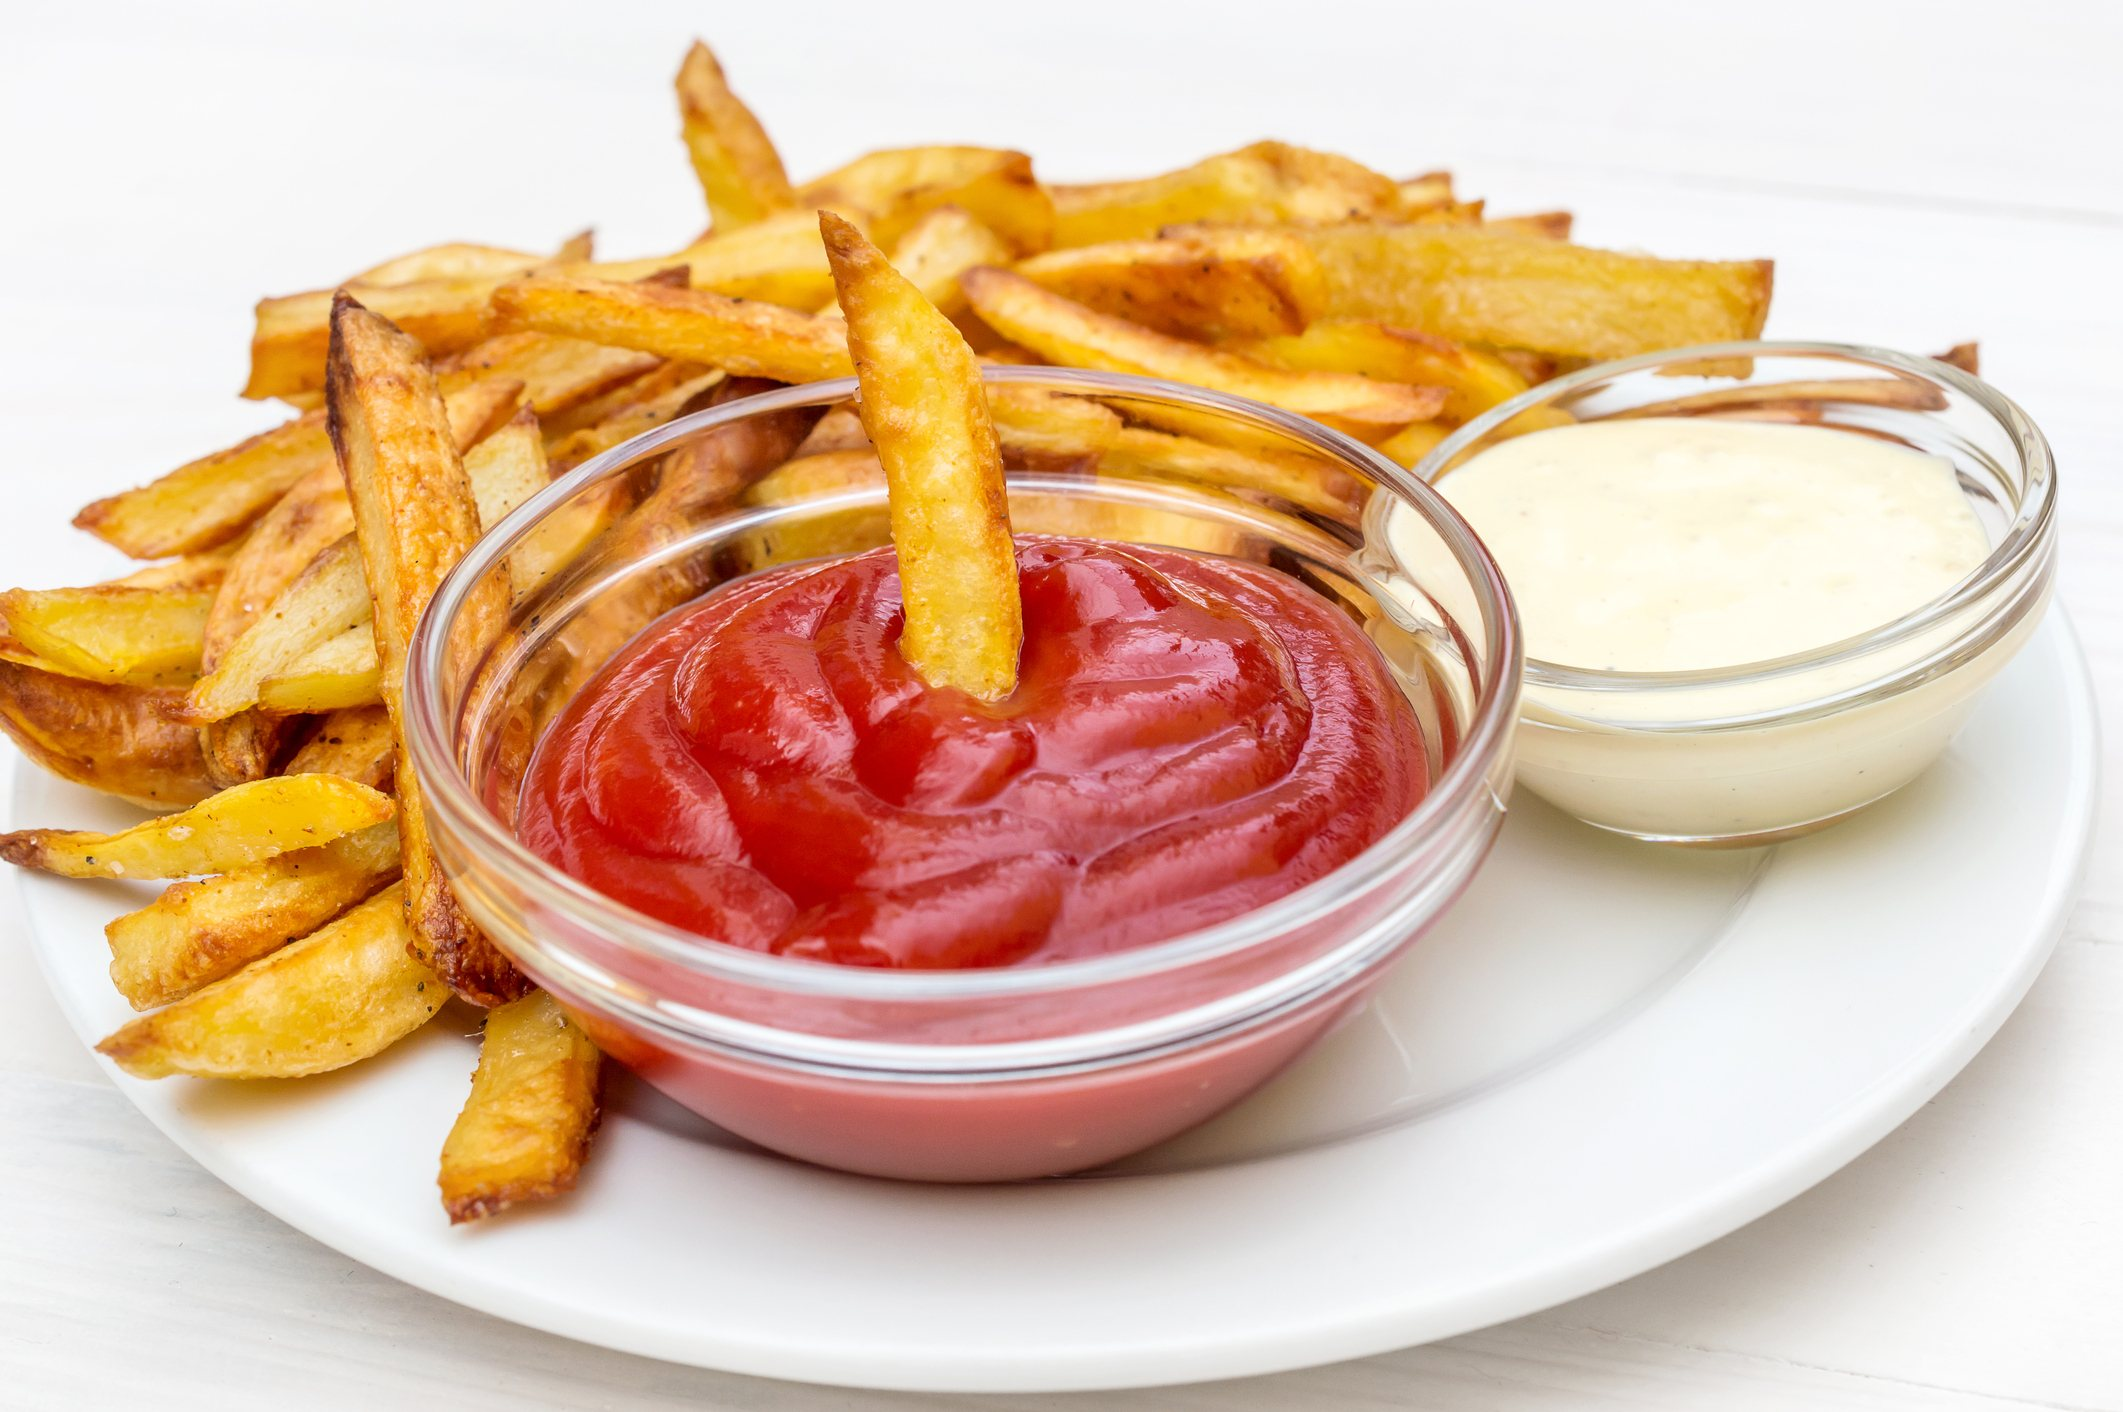 Plate with fries potato, ketchup and mayonnaise on the table.